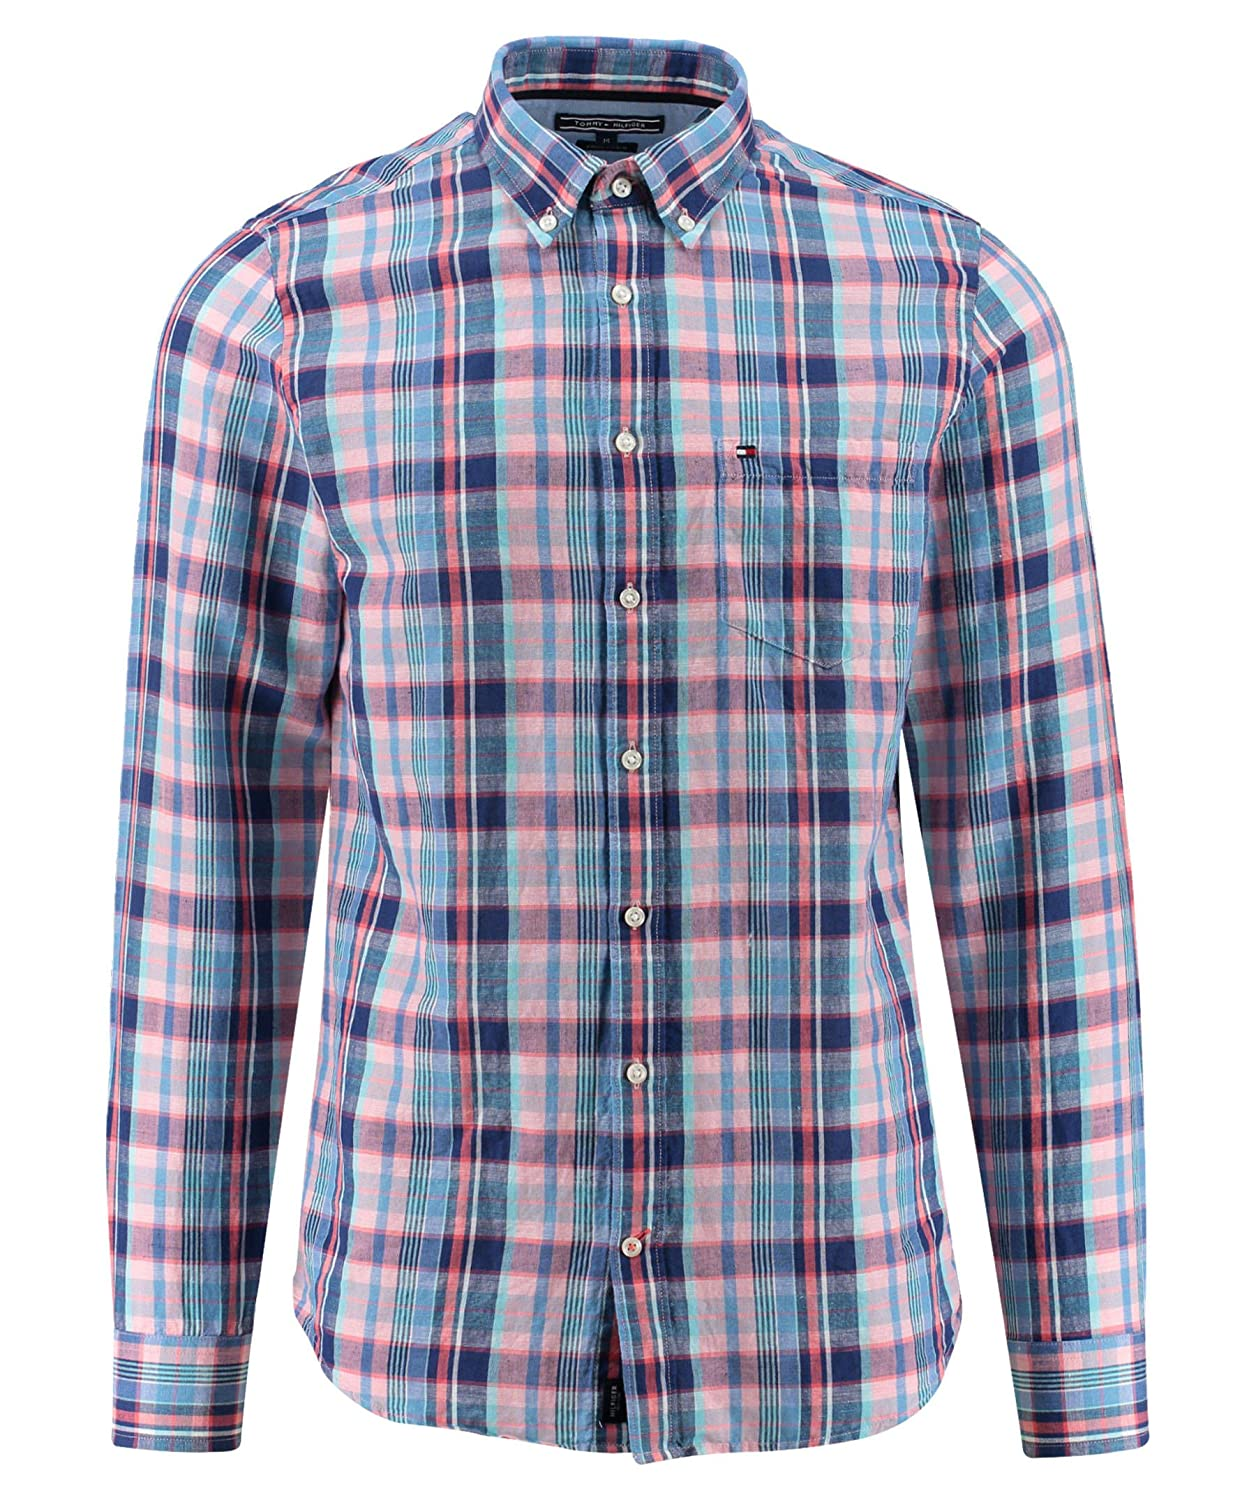 cc2e72a7 Tommy Hilfiger Men's Checkered Long Sleeve Casual Shirt Blue Blue:  Amazon.co.uk: Clothing